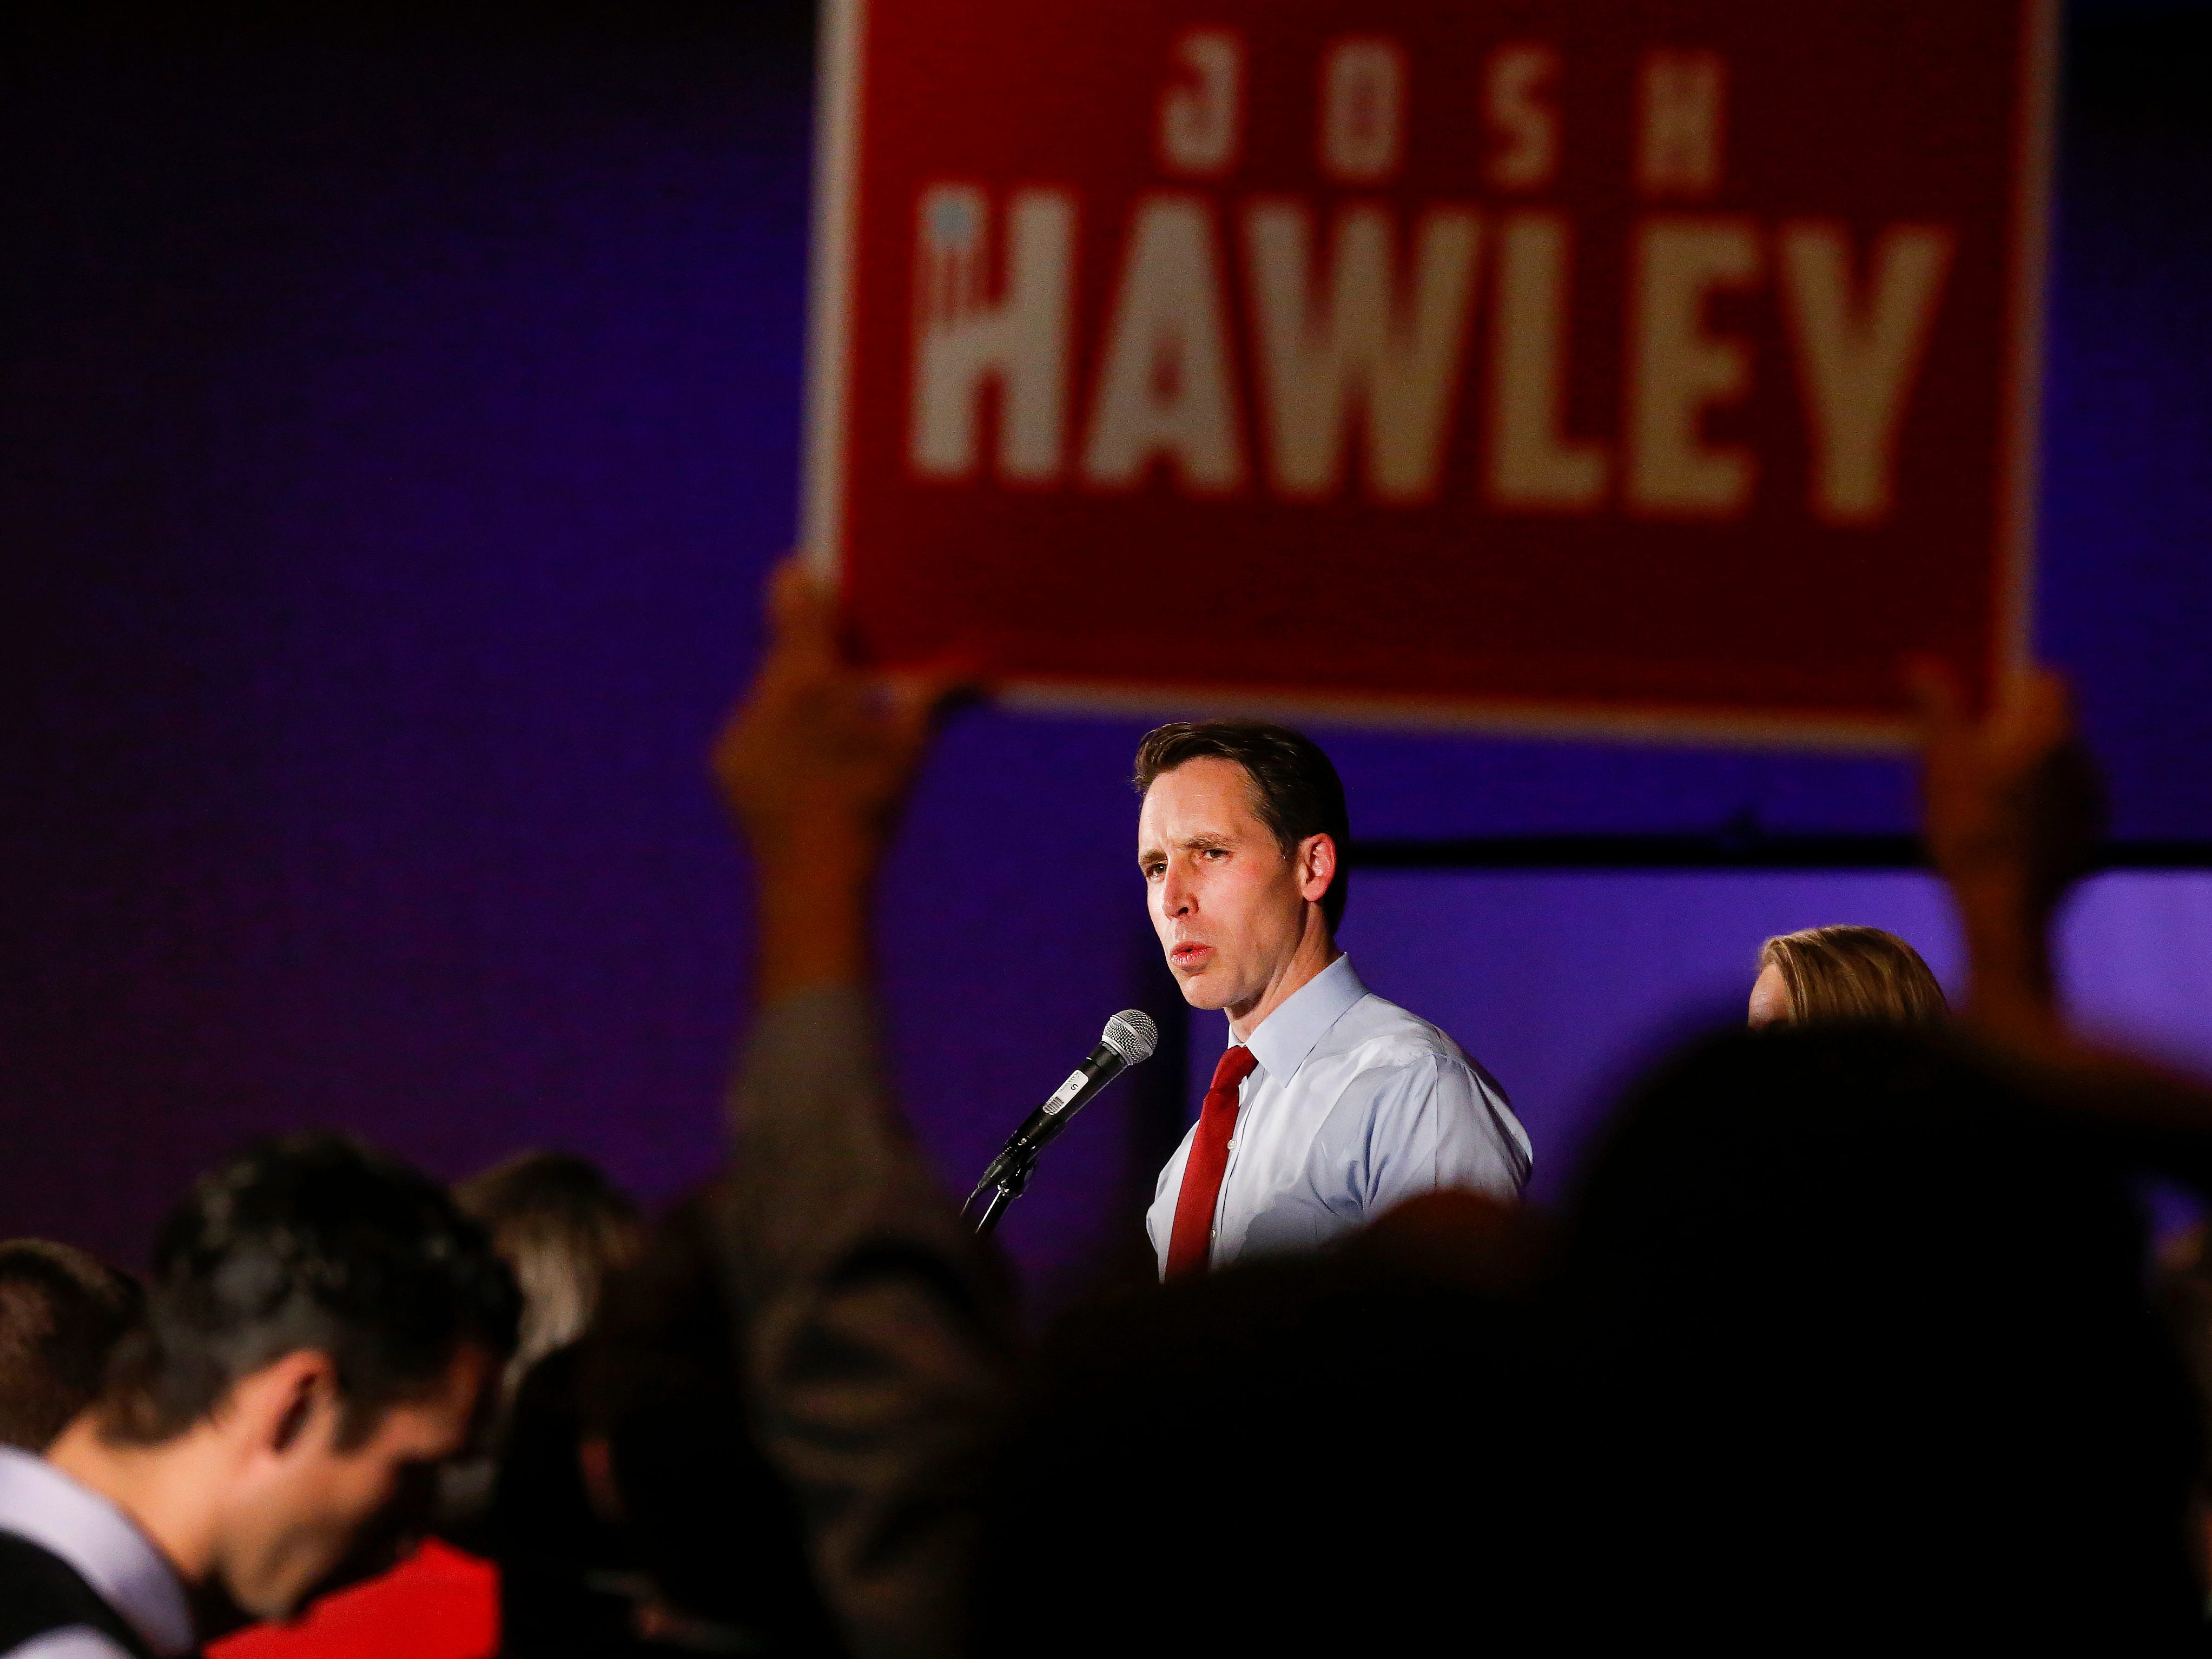 Senator elect Josh Hawley speaks to the crowd at the Greene County Republican's watch party at the University Plaza hotel on Tuesday, Nov. 6, 2018.